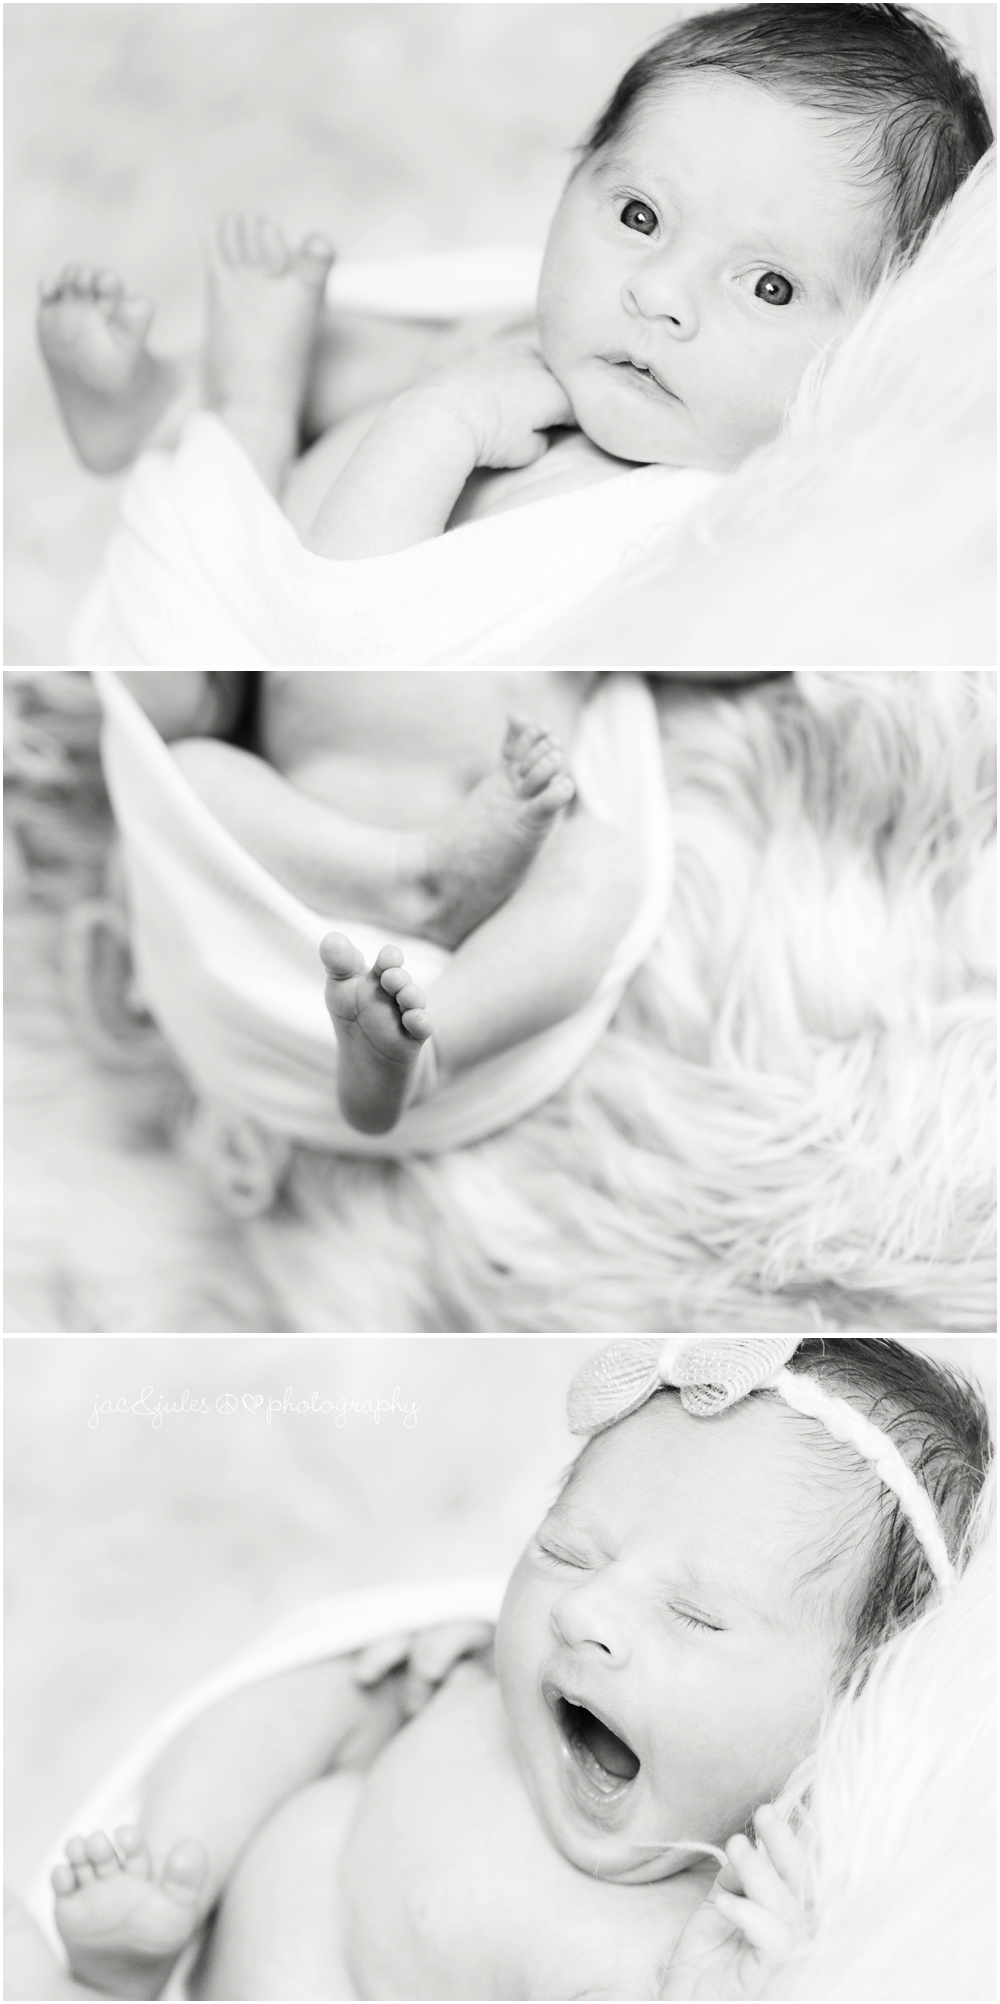 jacnjules photographs newborn baby girl at their home in nj